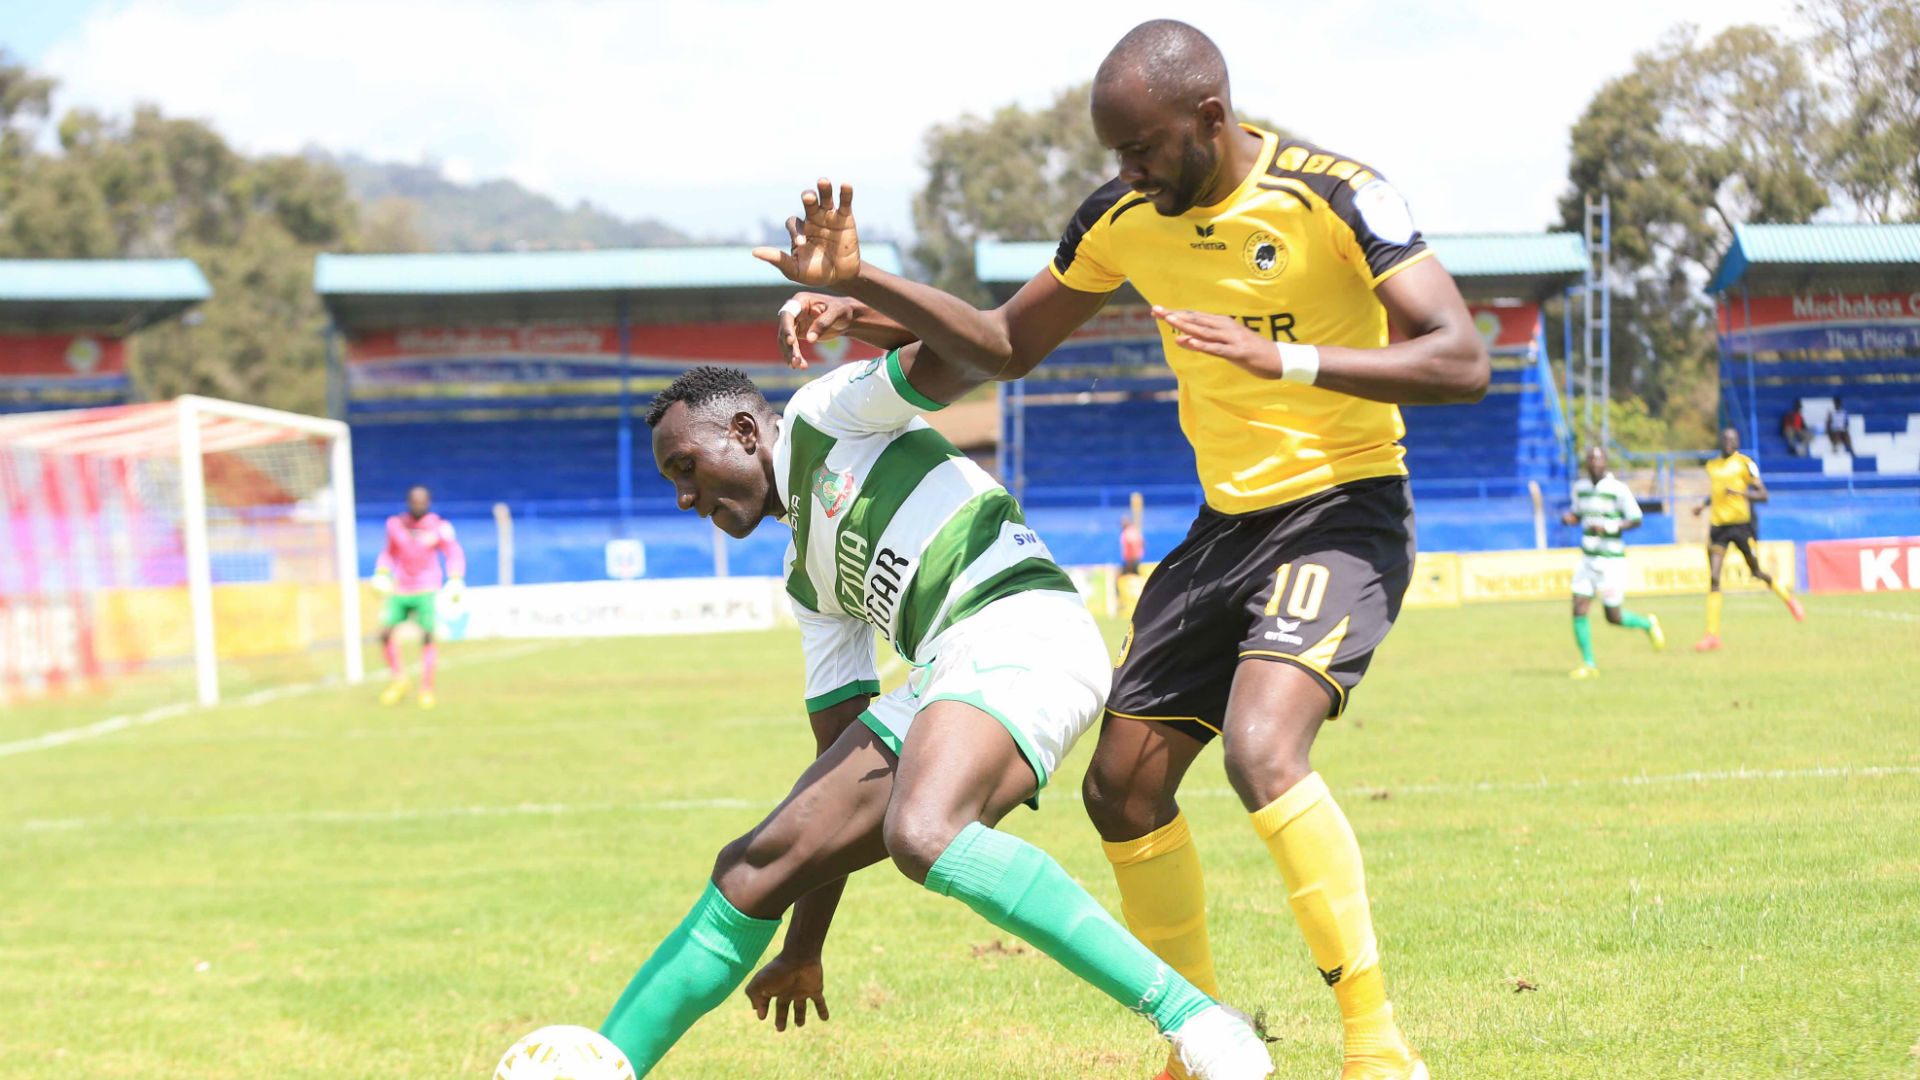 KPL and Equity Bank have not entered into a sponsorship deal - Oguda